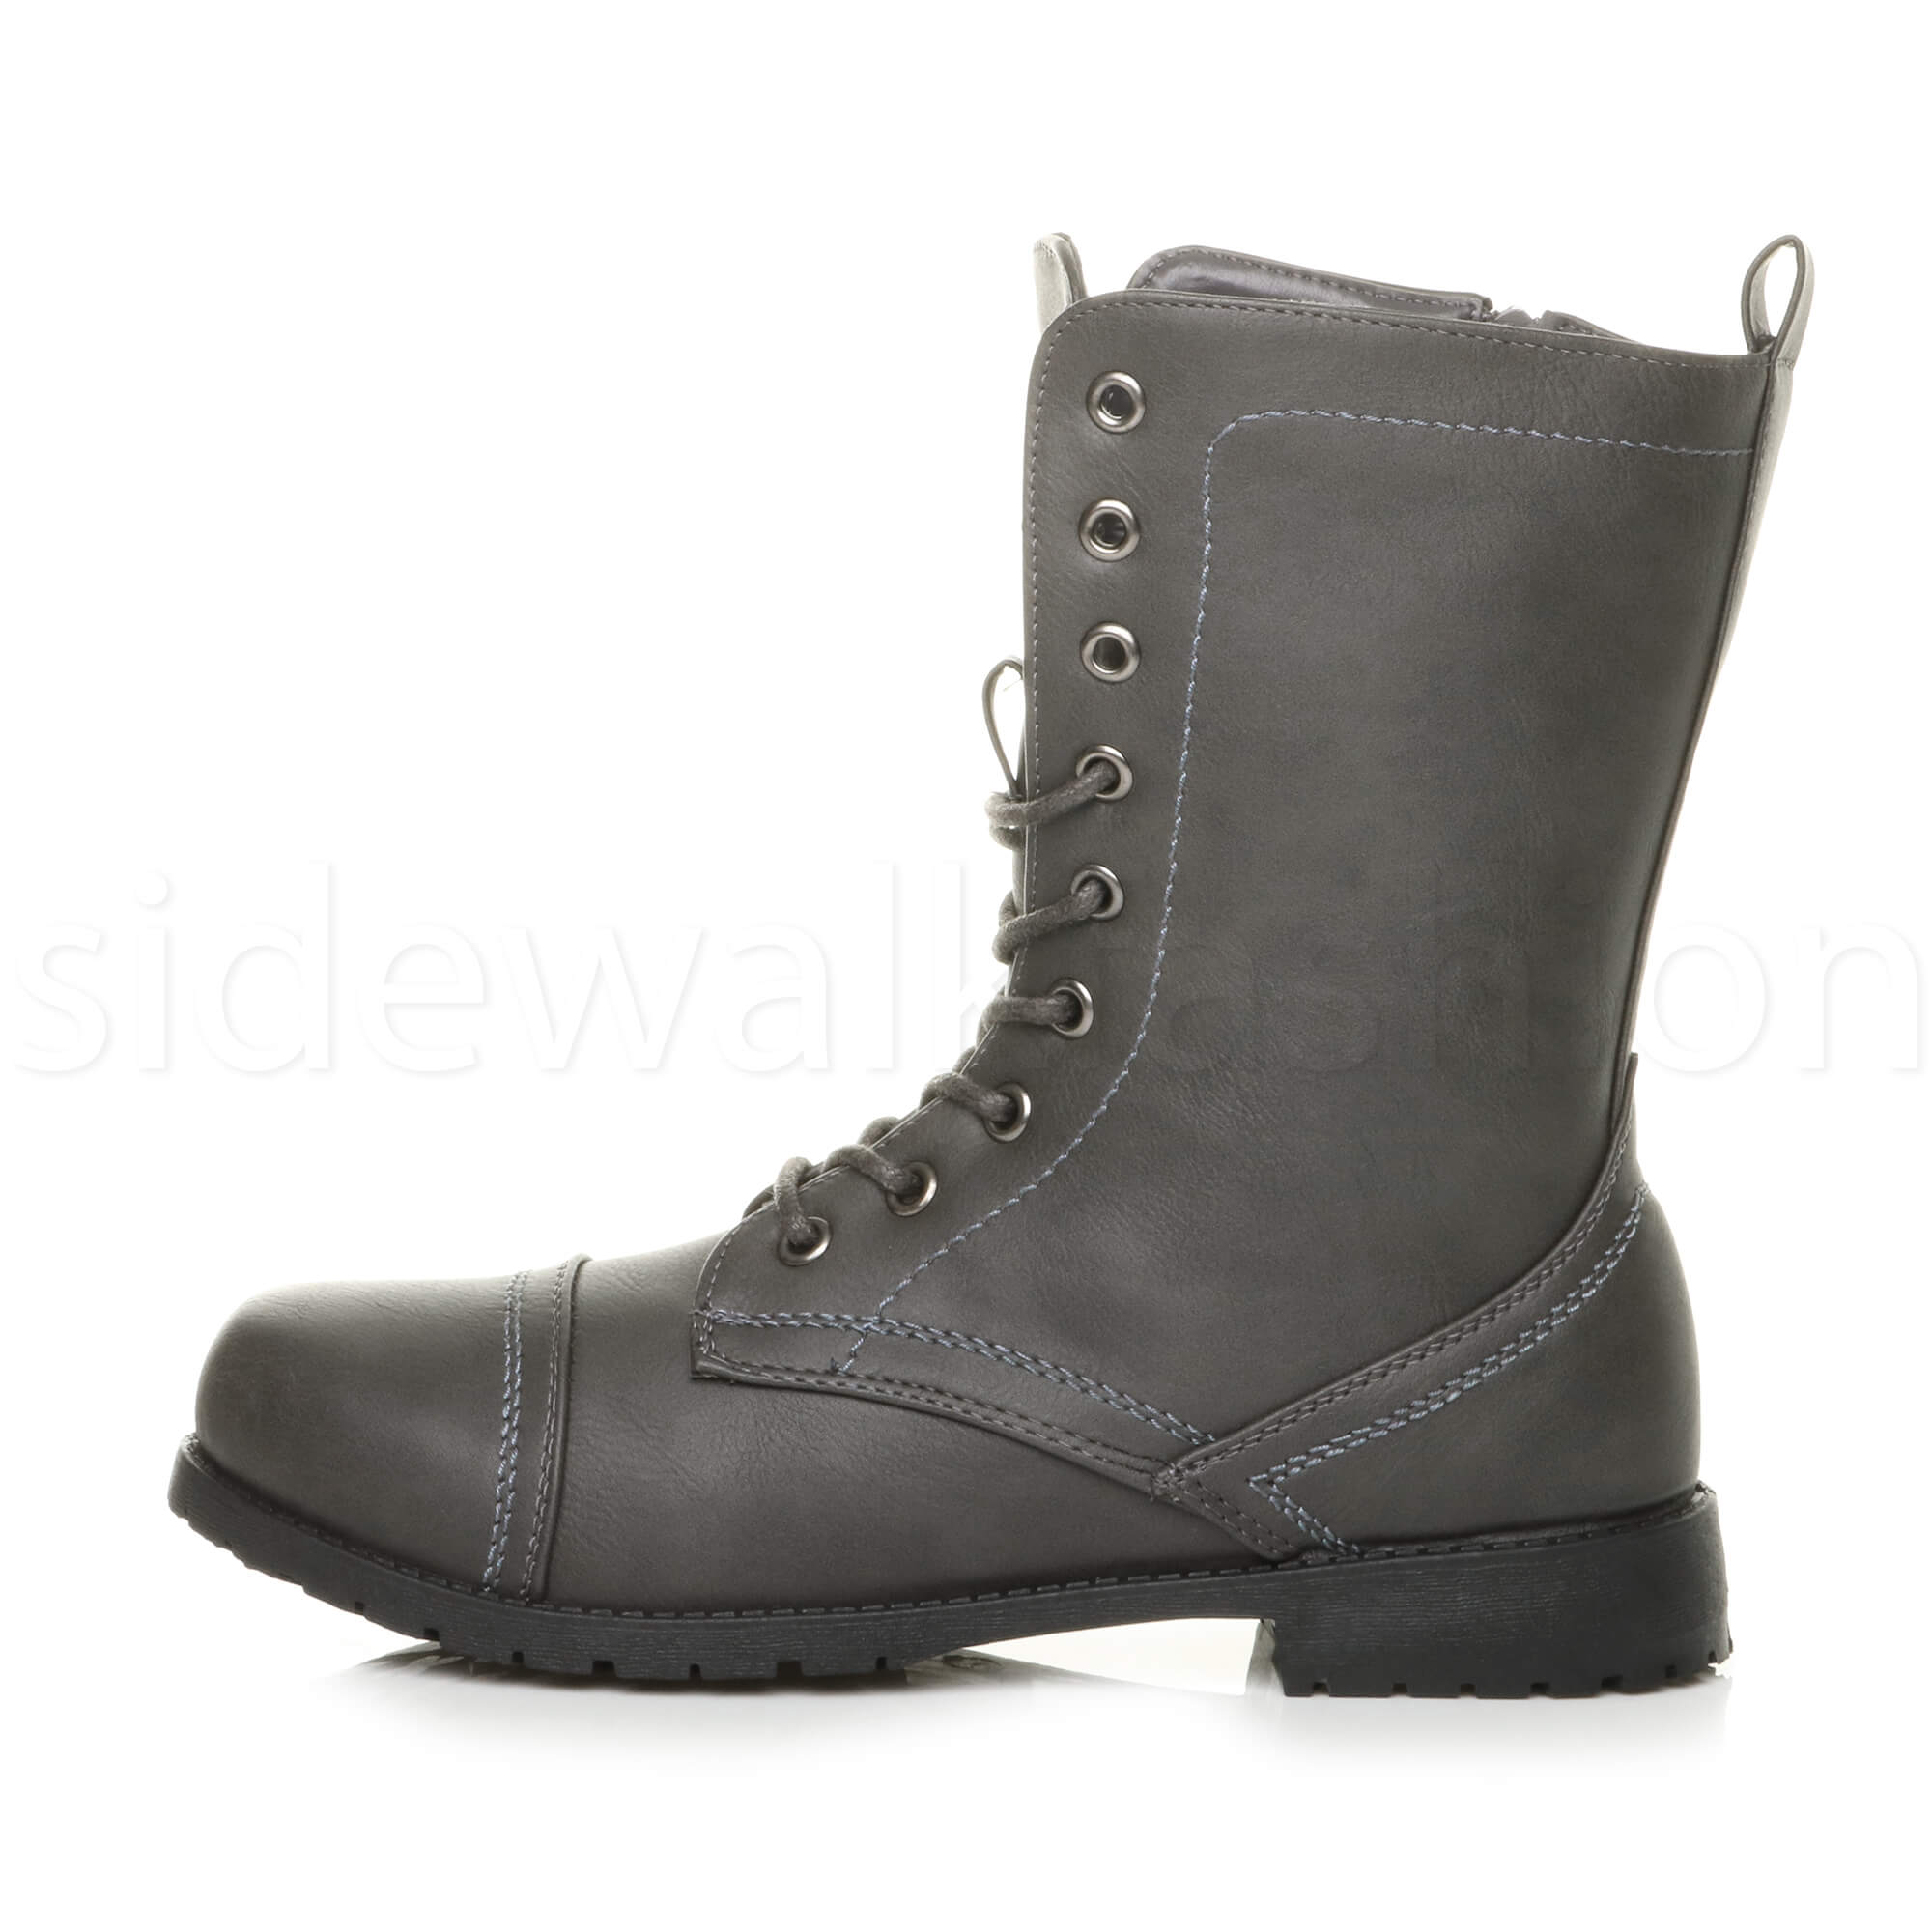 Womens-ladies-low-heel-flat-lace-up-zip-combat-biker-military-ankle-boots-size thumbnail 83